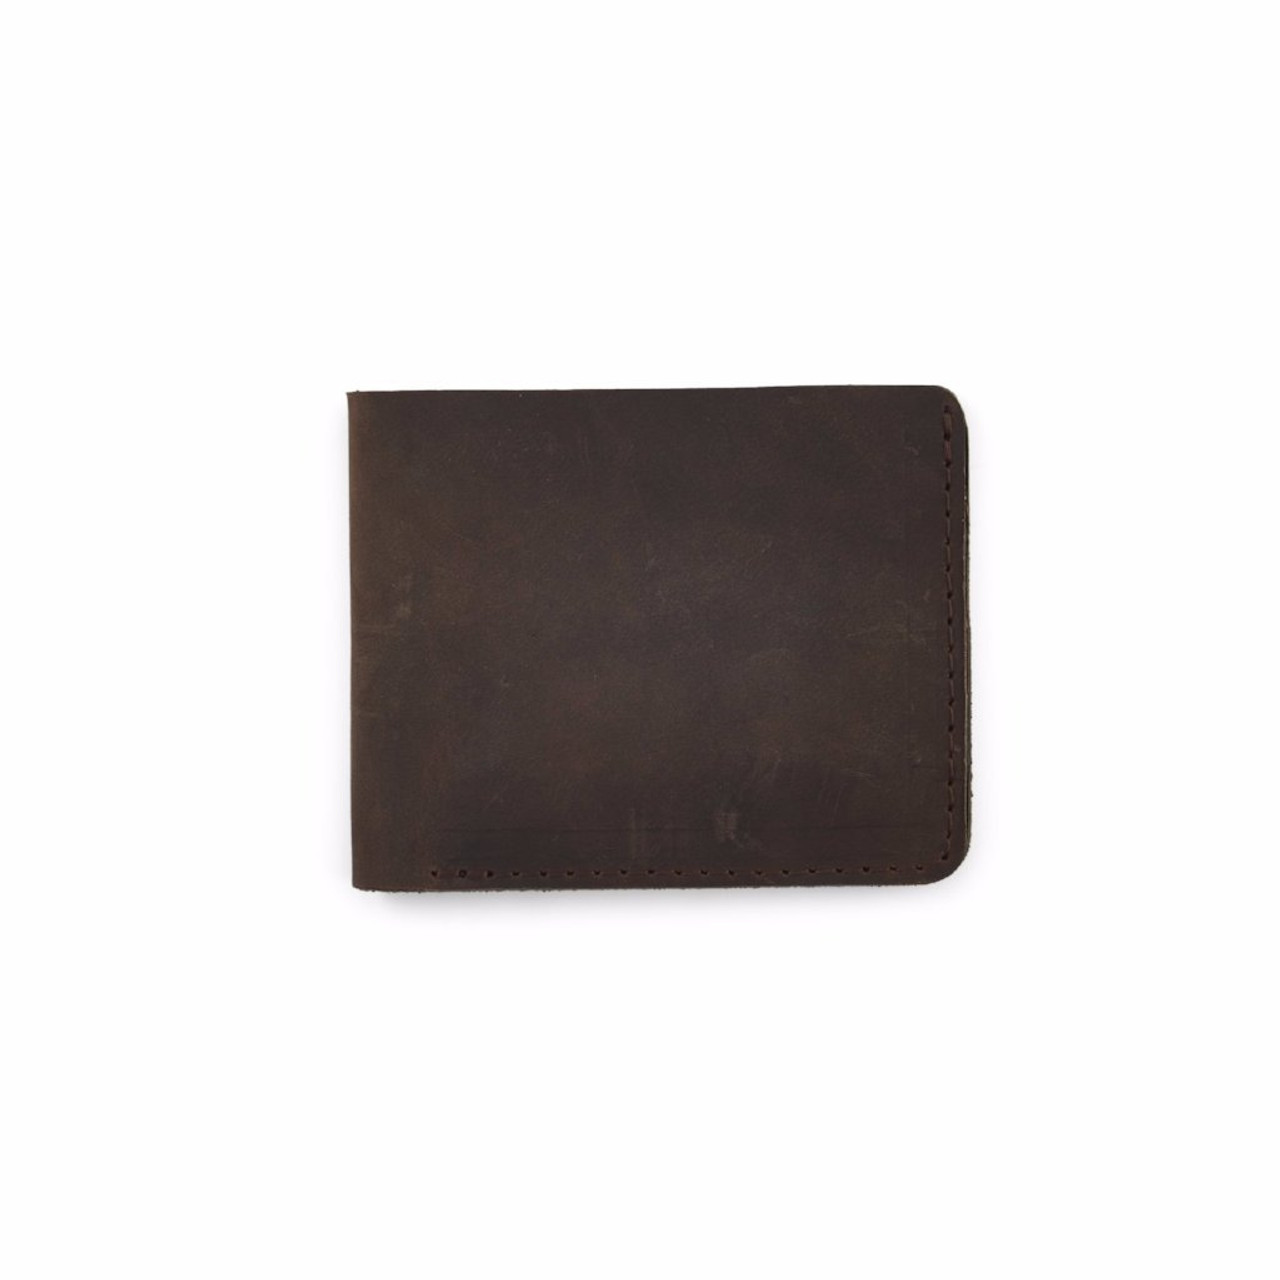 Knox Bifold Leather Wallet -Back - Dark Brown - by Rustico